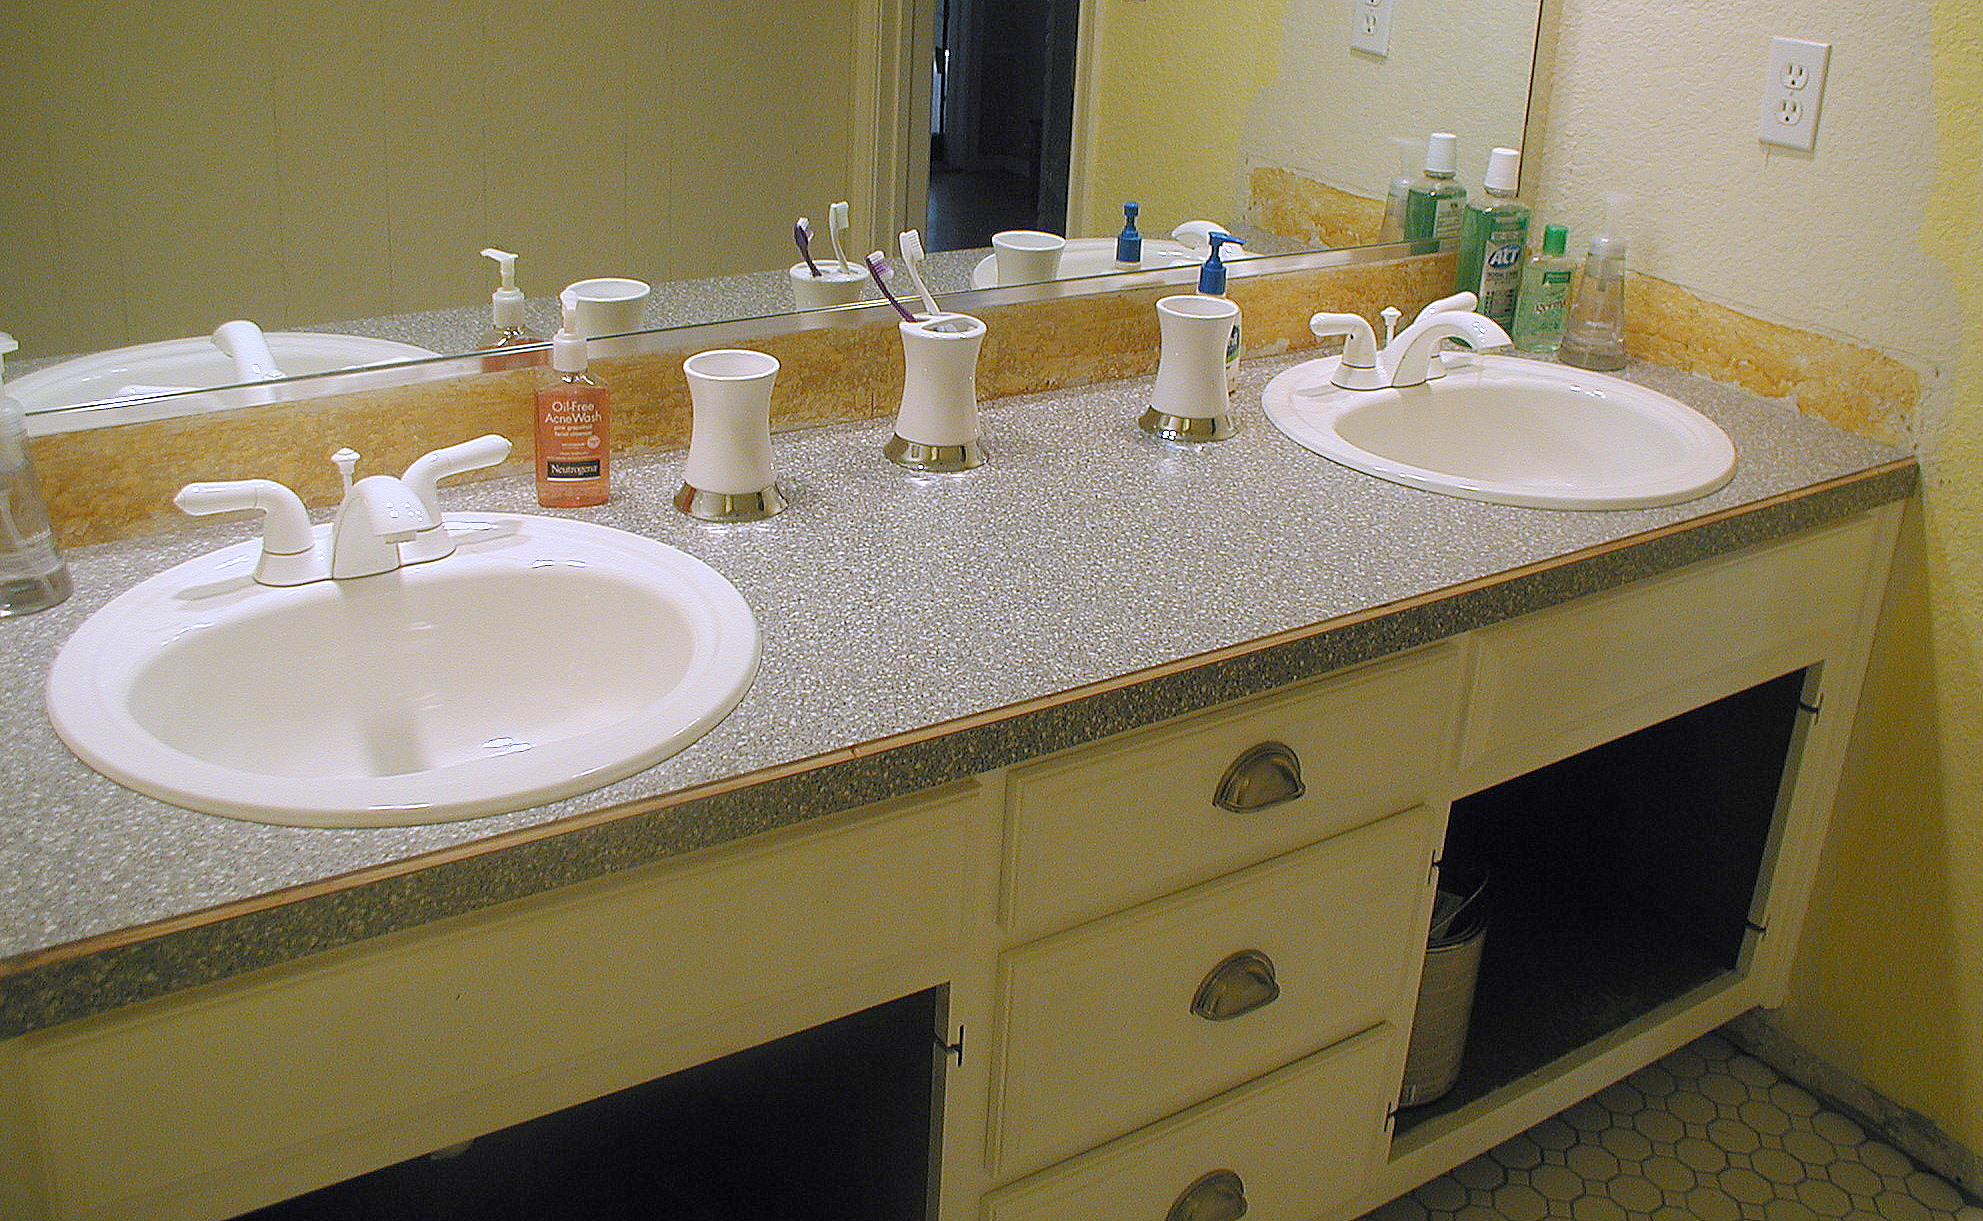 Bathroom Counter And Backsplash : Project bathroom vanity with laminate over